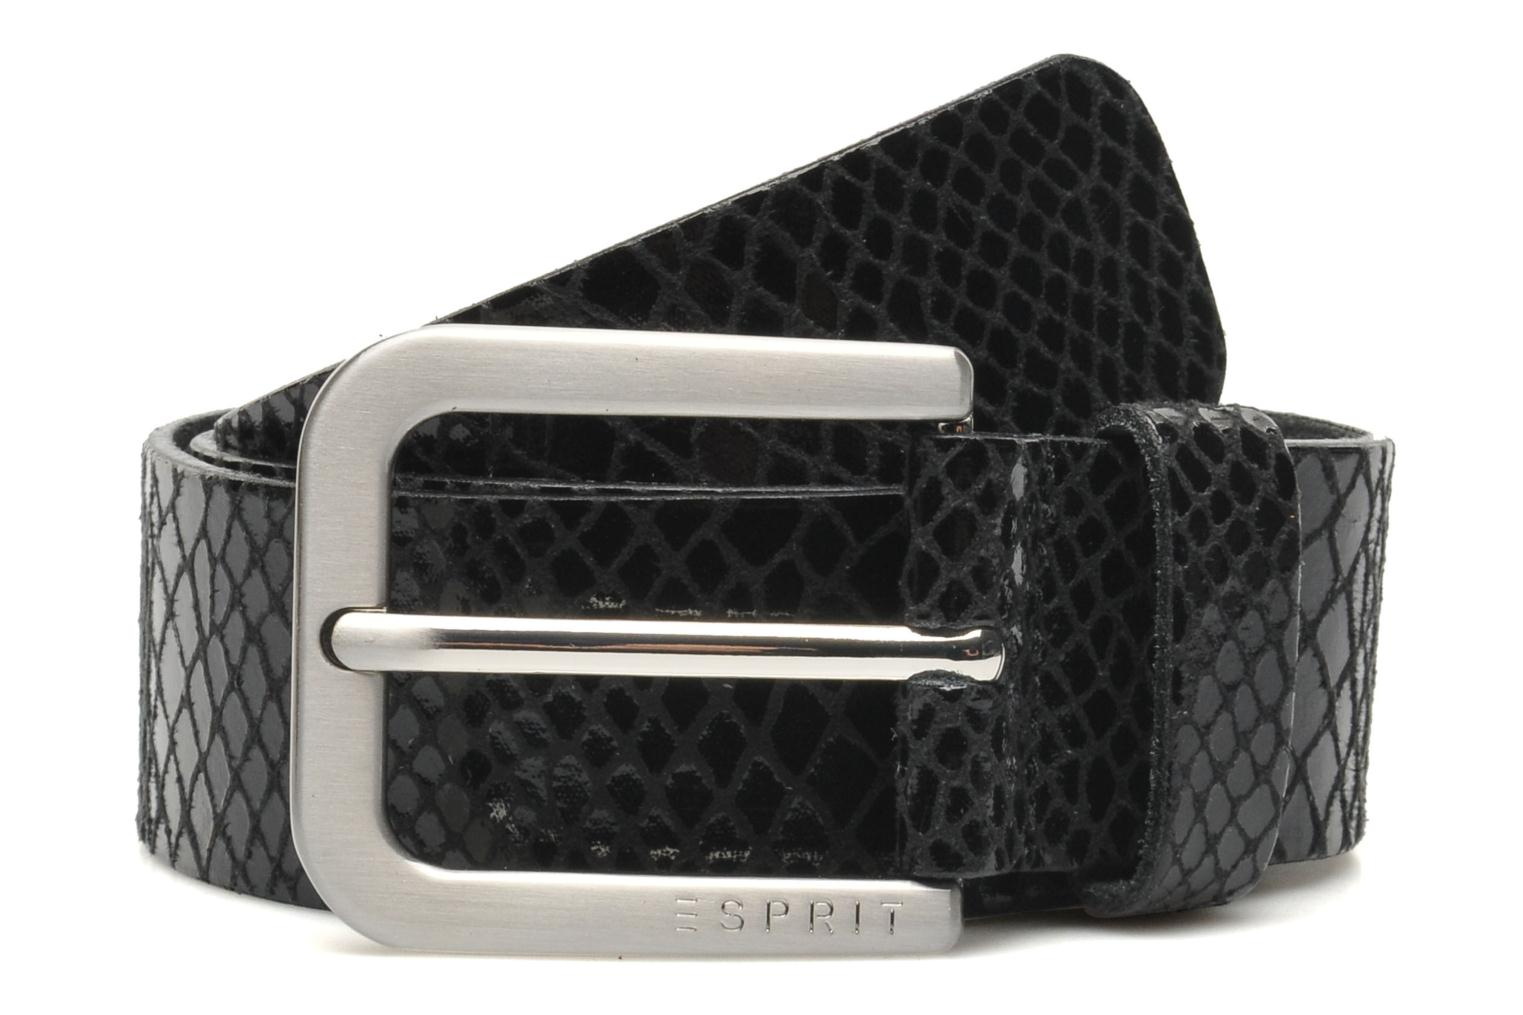 Snake leather Belt by Esprit